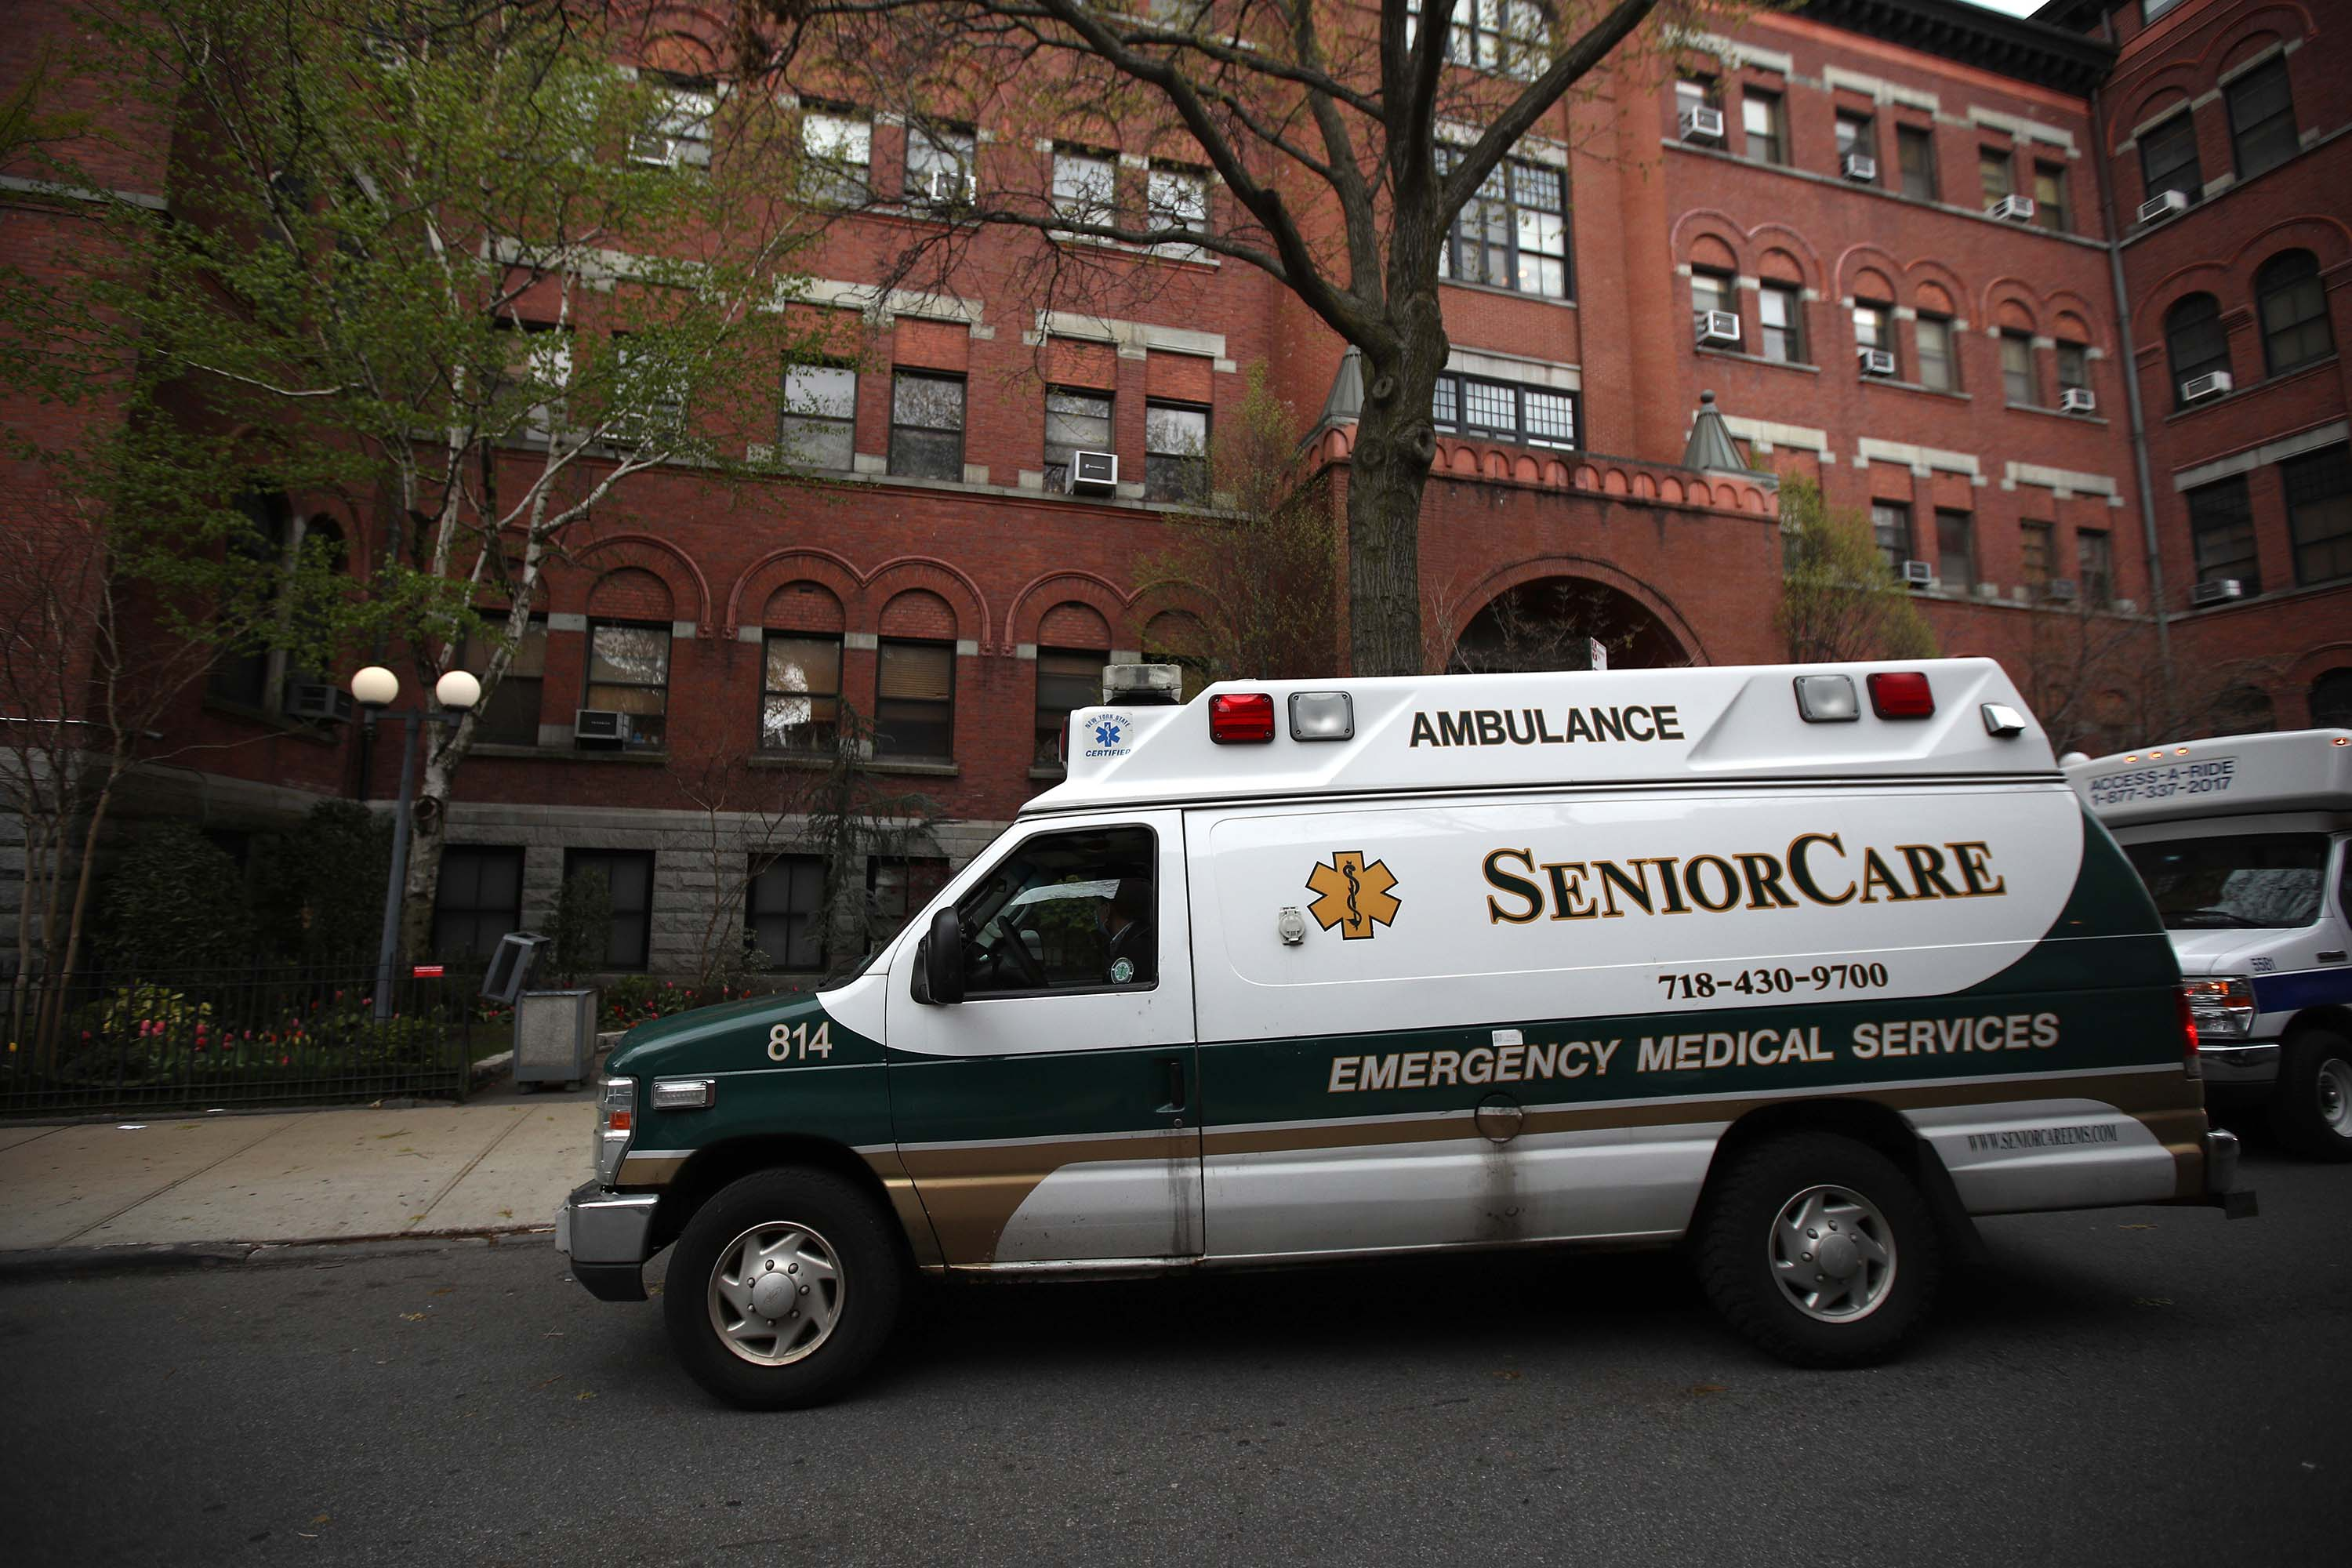 Top New York state health official grilled on the handling of Covid-19 nursing home deaths